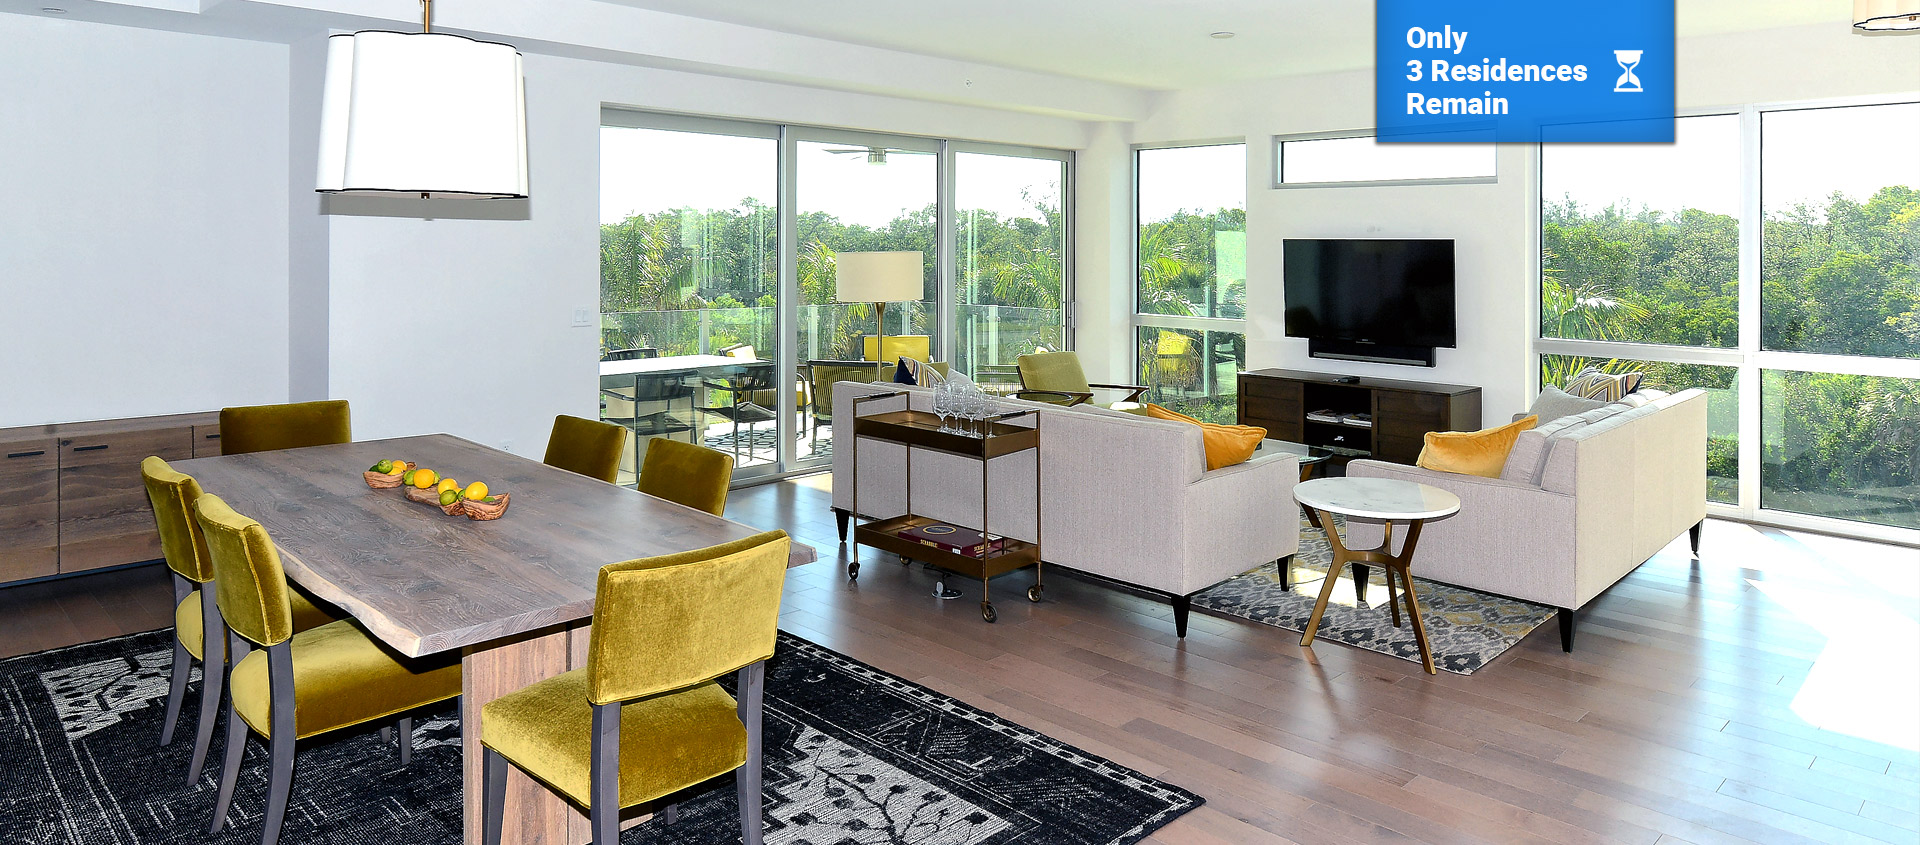 MODERN, CLEAN, THOUGHTFUL RESIDENCES